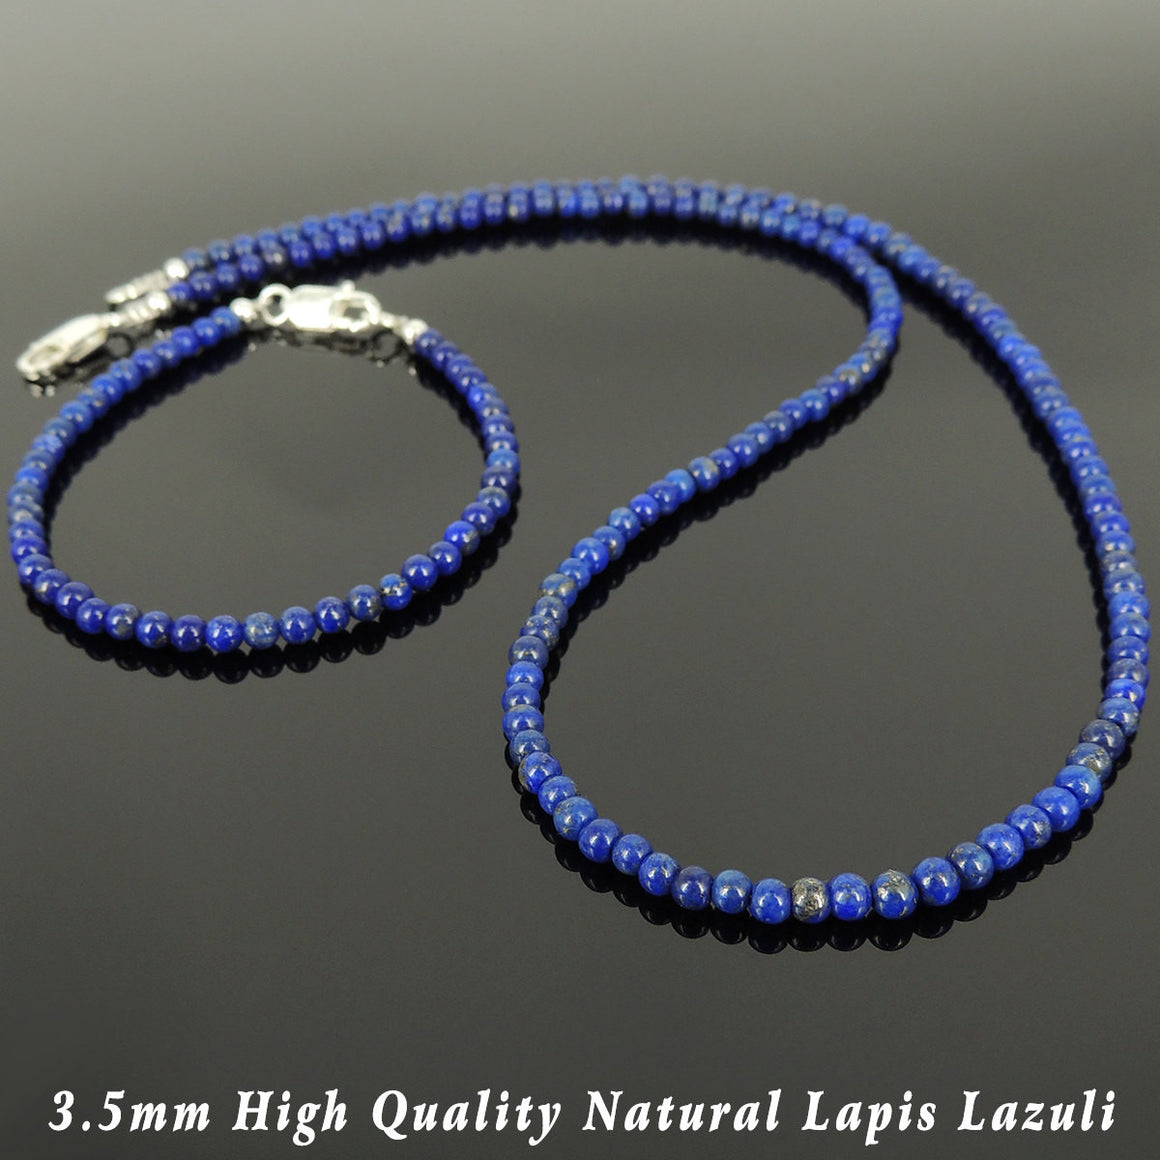 3.5mm Lapis Lazuli Healing Gemstone Bracelet & Necklace Set with S925 Sterling Silver Spacer Beads & Clasp - Handmade by Gem & Silver NK138_BR508